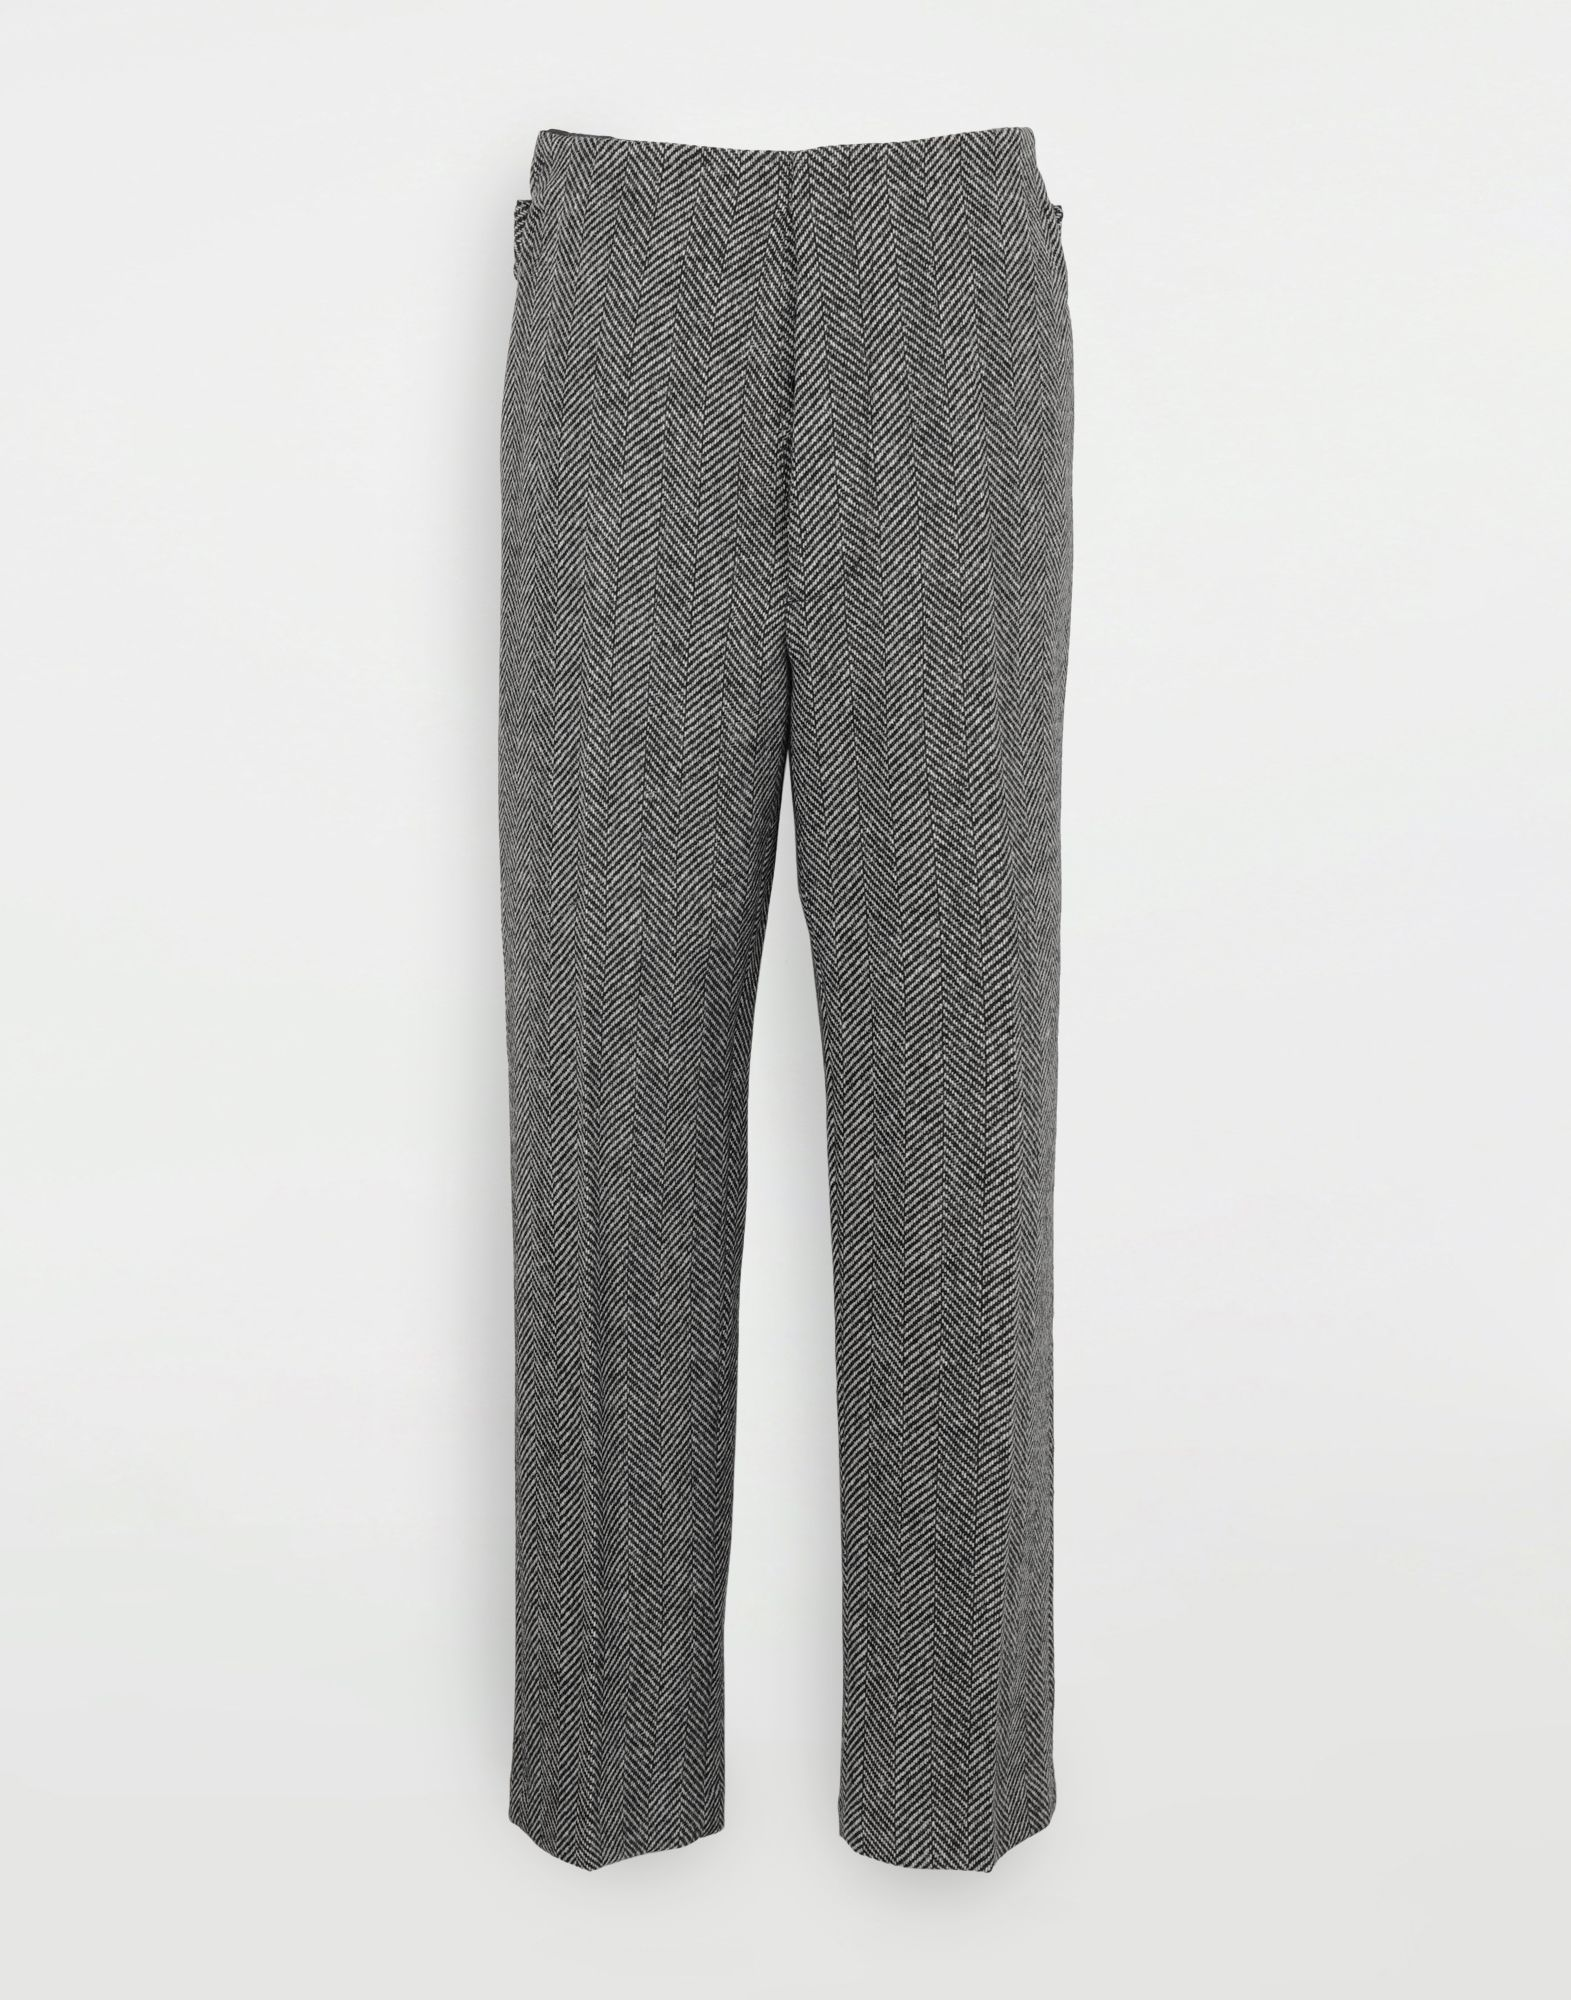 MAISON MARGIELA Scratch fastening herringbone trousers Casual pants Man f